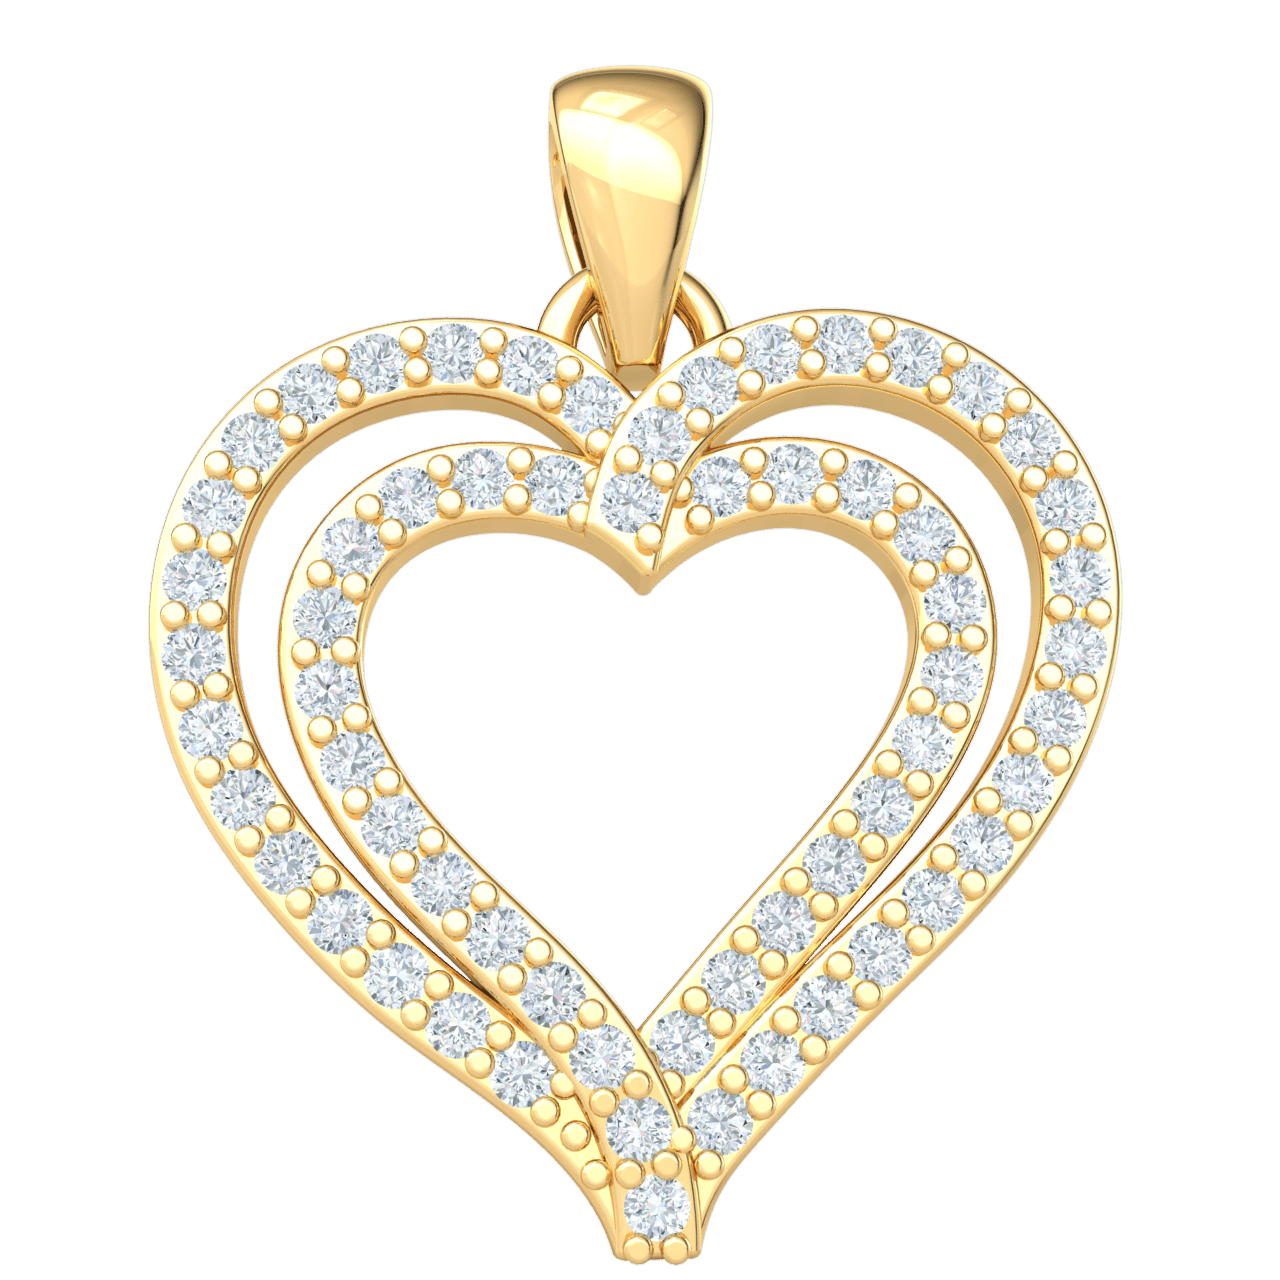 0.27 Ctw Absolutely Stunning Real Double Heart Shaped Pendant Covered in White Diamonds in JK I1 10 kt Gold